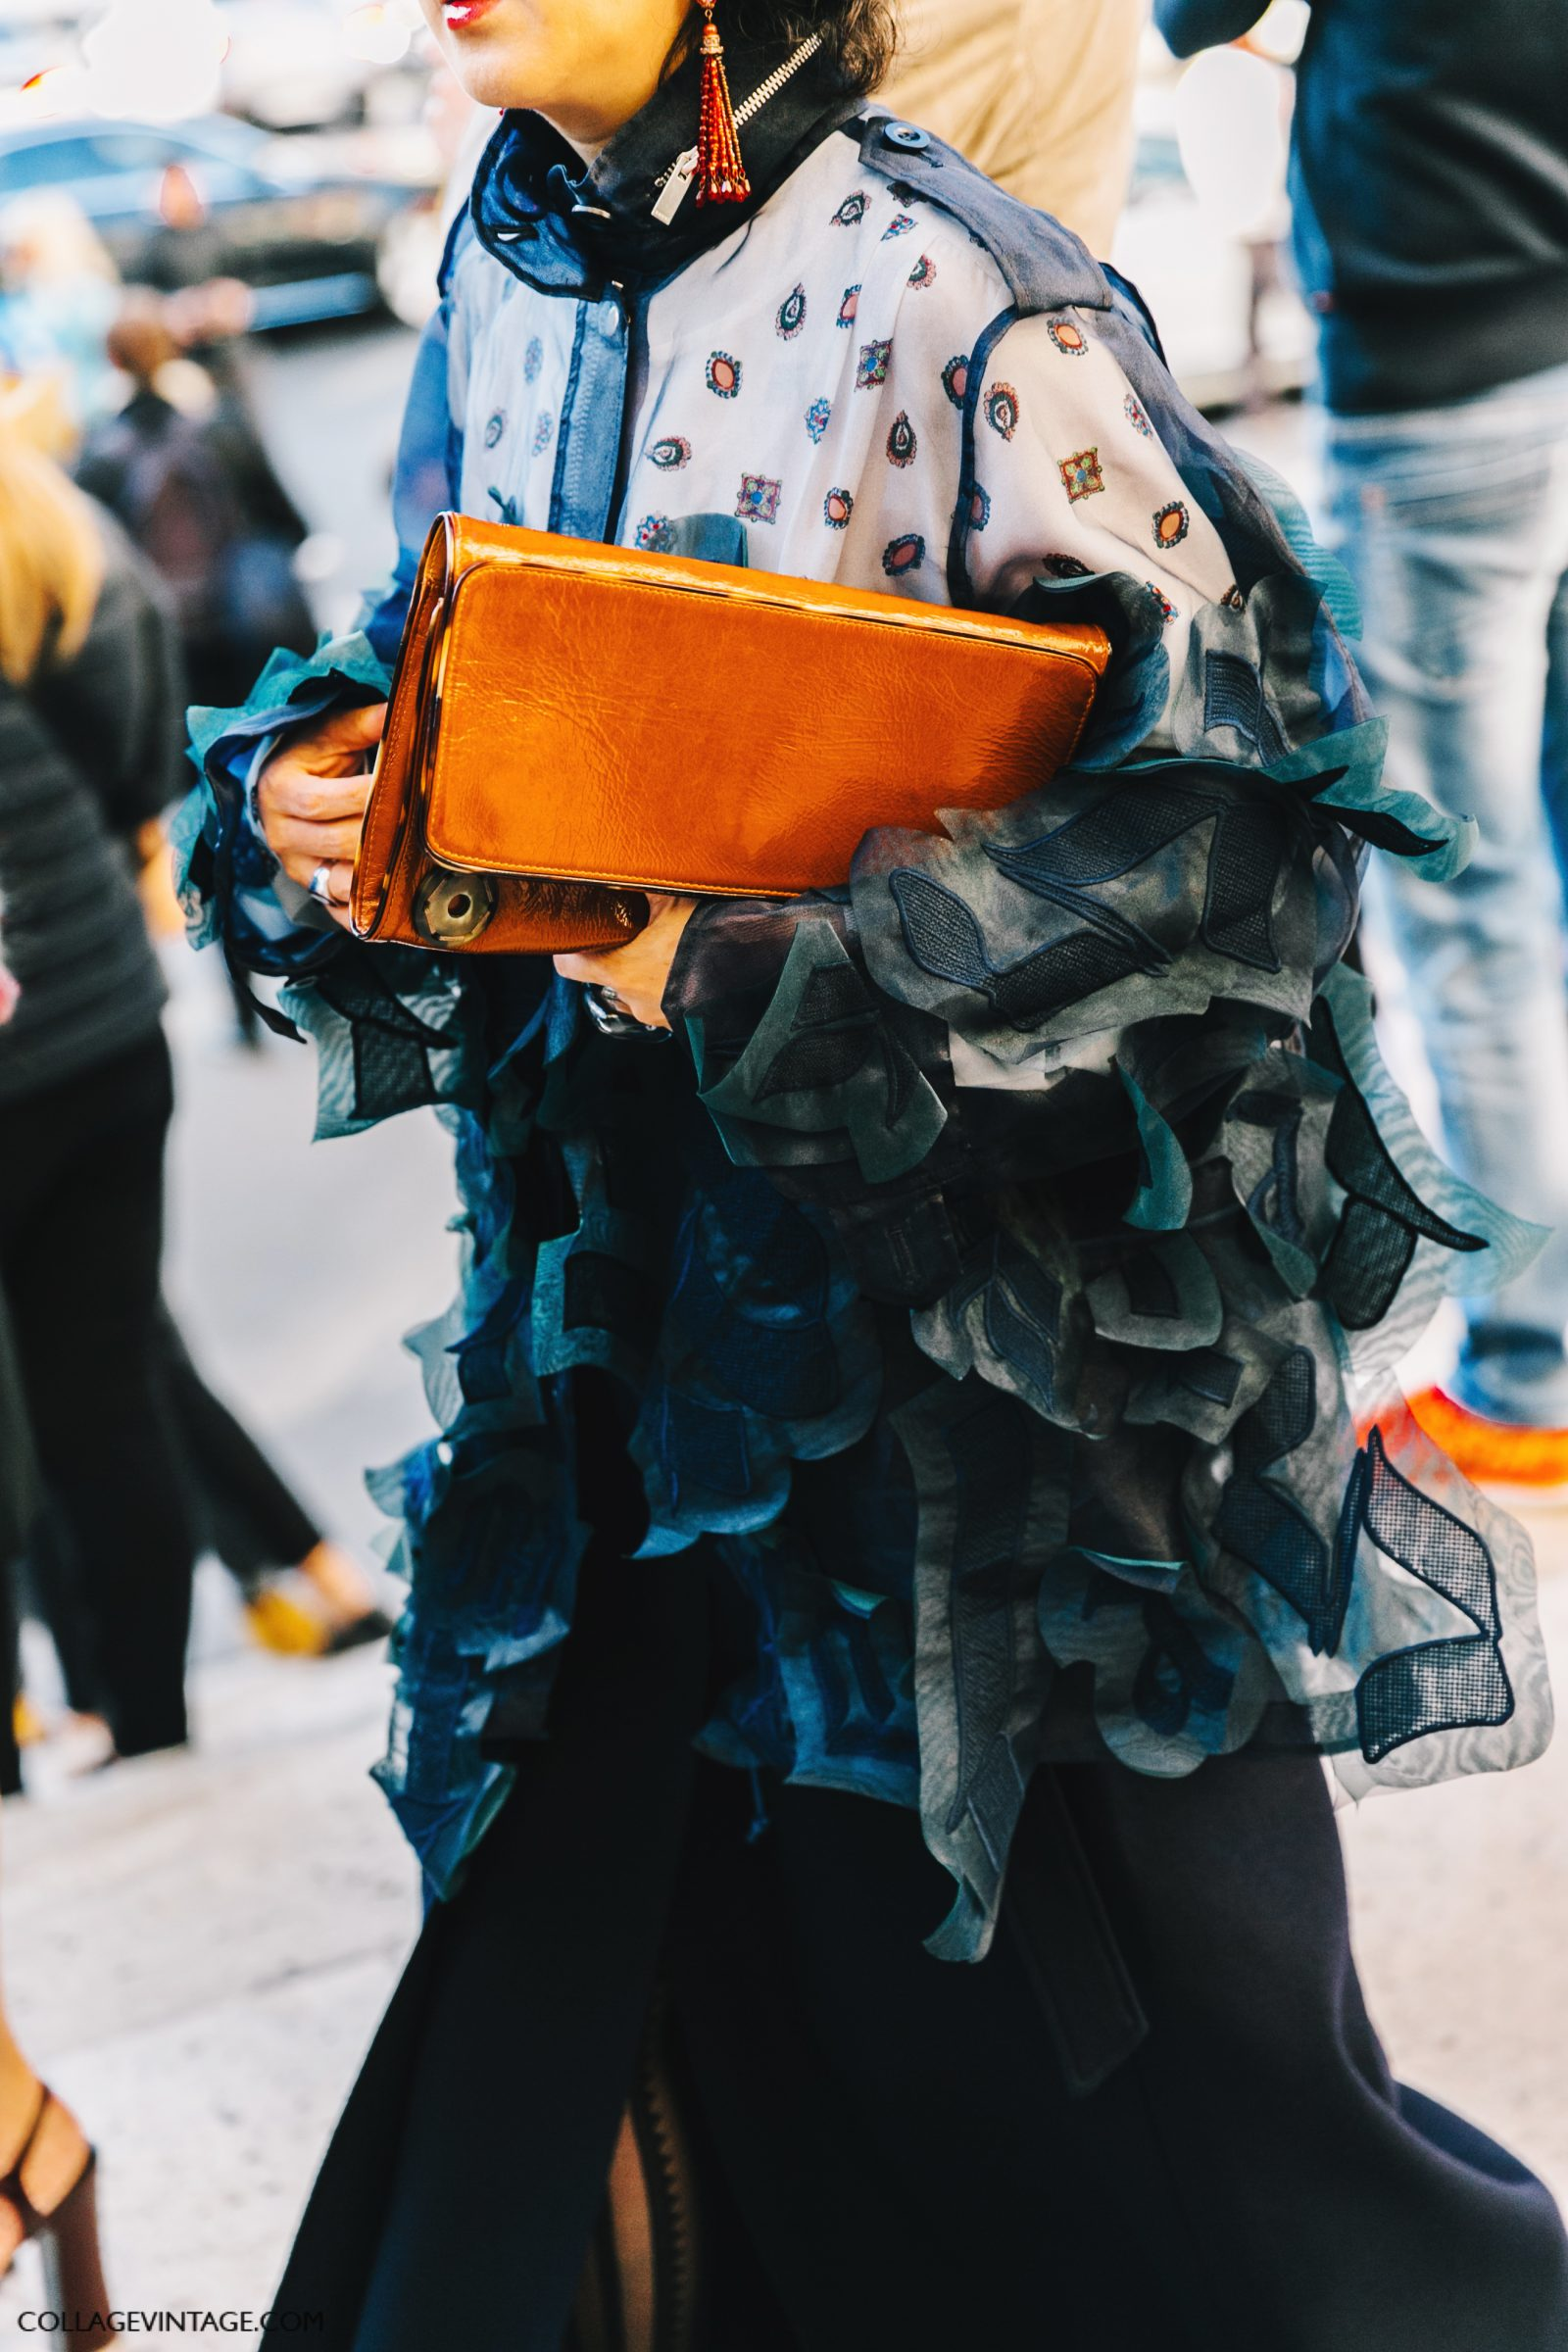 pfw-paris_fashion_week_ss17-street_style-outfits-collage_vintage-olympia_letan-hermes-stella_mccartney-sacai-10